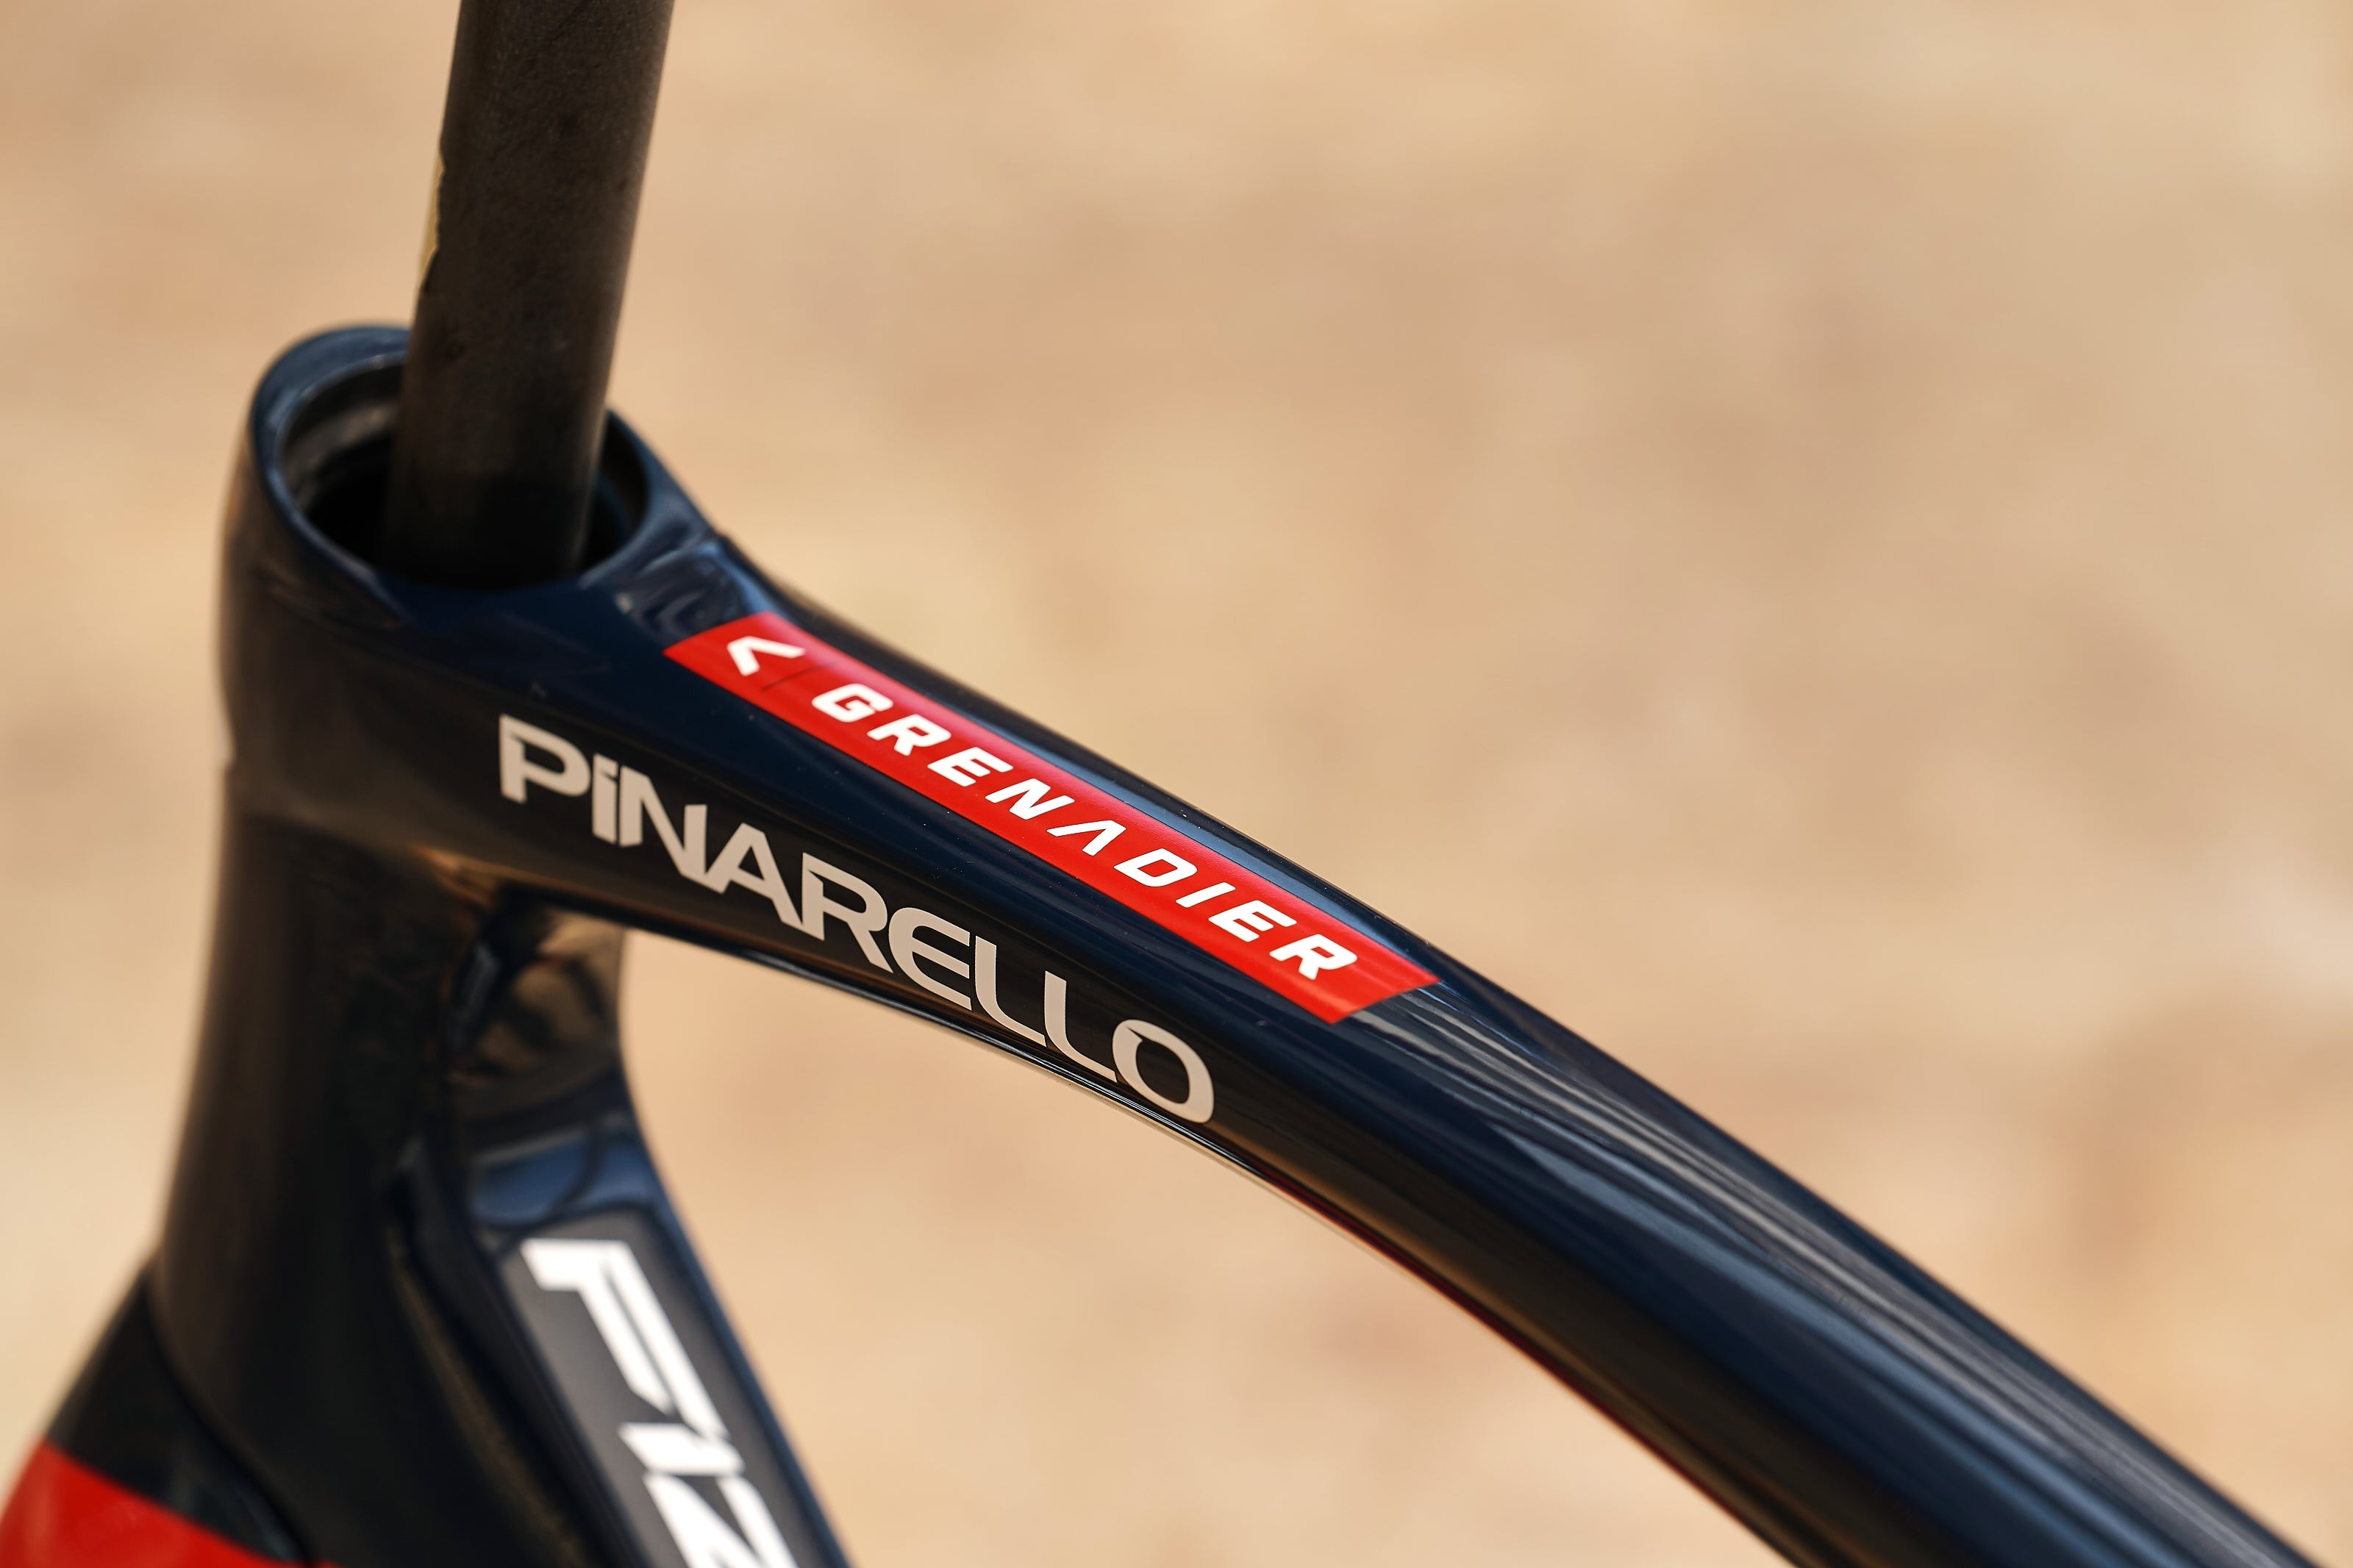 Pinarello Dogma F12 Ineos Blue - Fourth of July Contender Bicycles